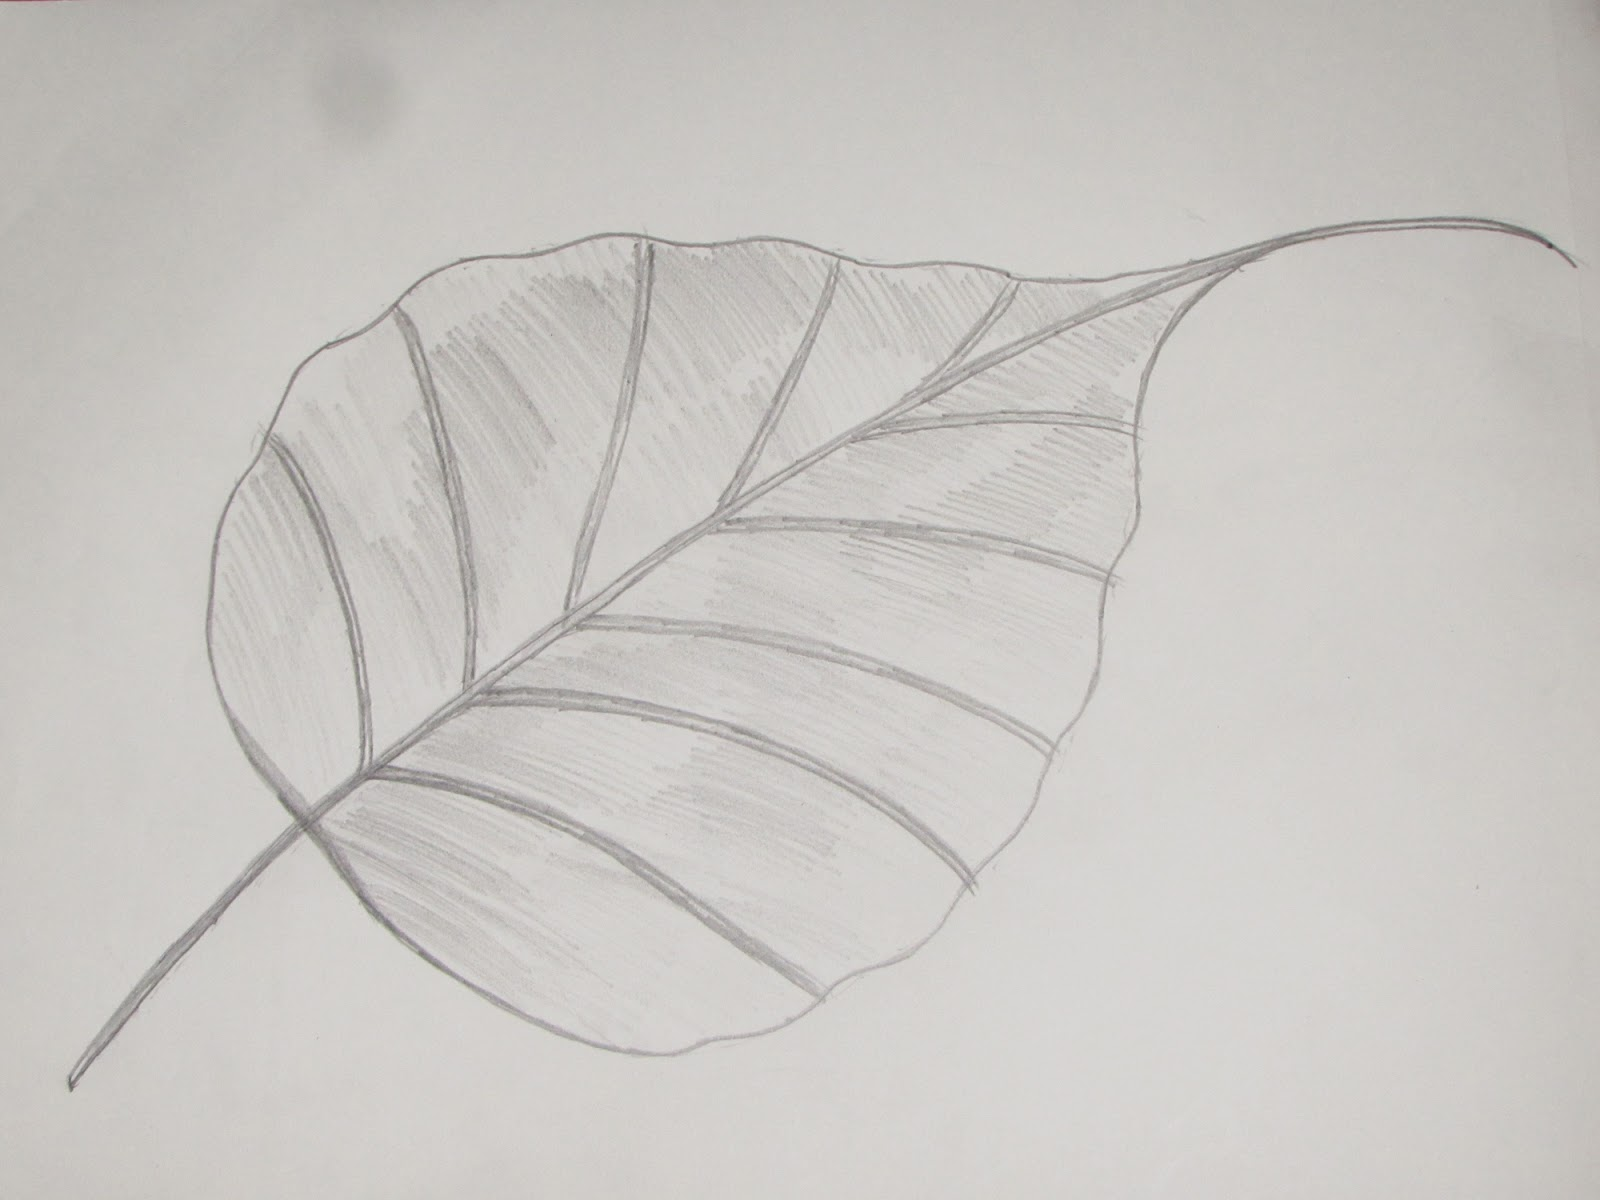 How to draw and sketch ficus religiosa peepal leaf 6